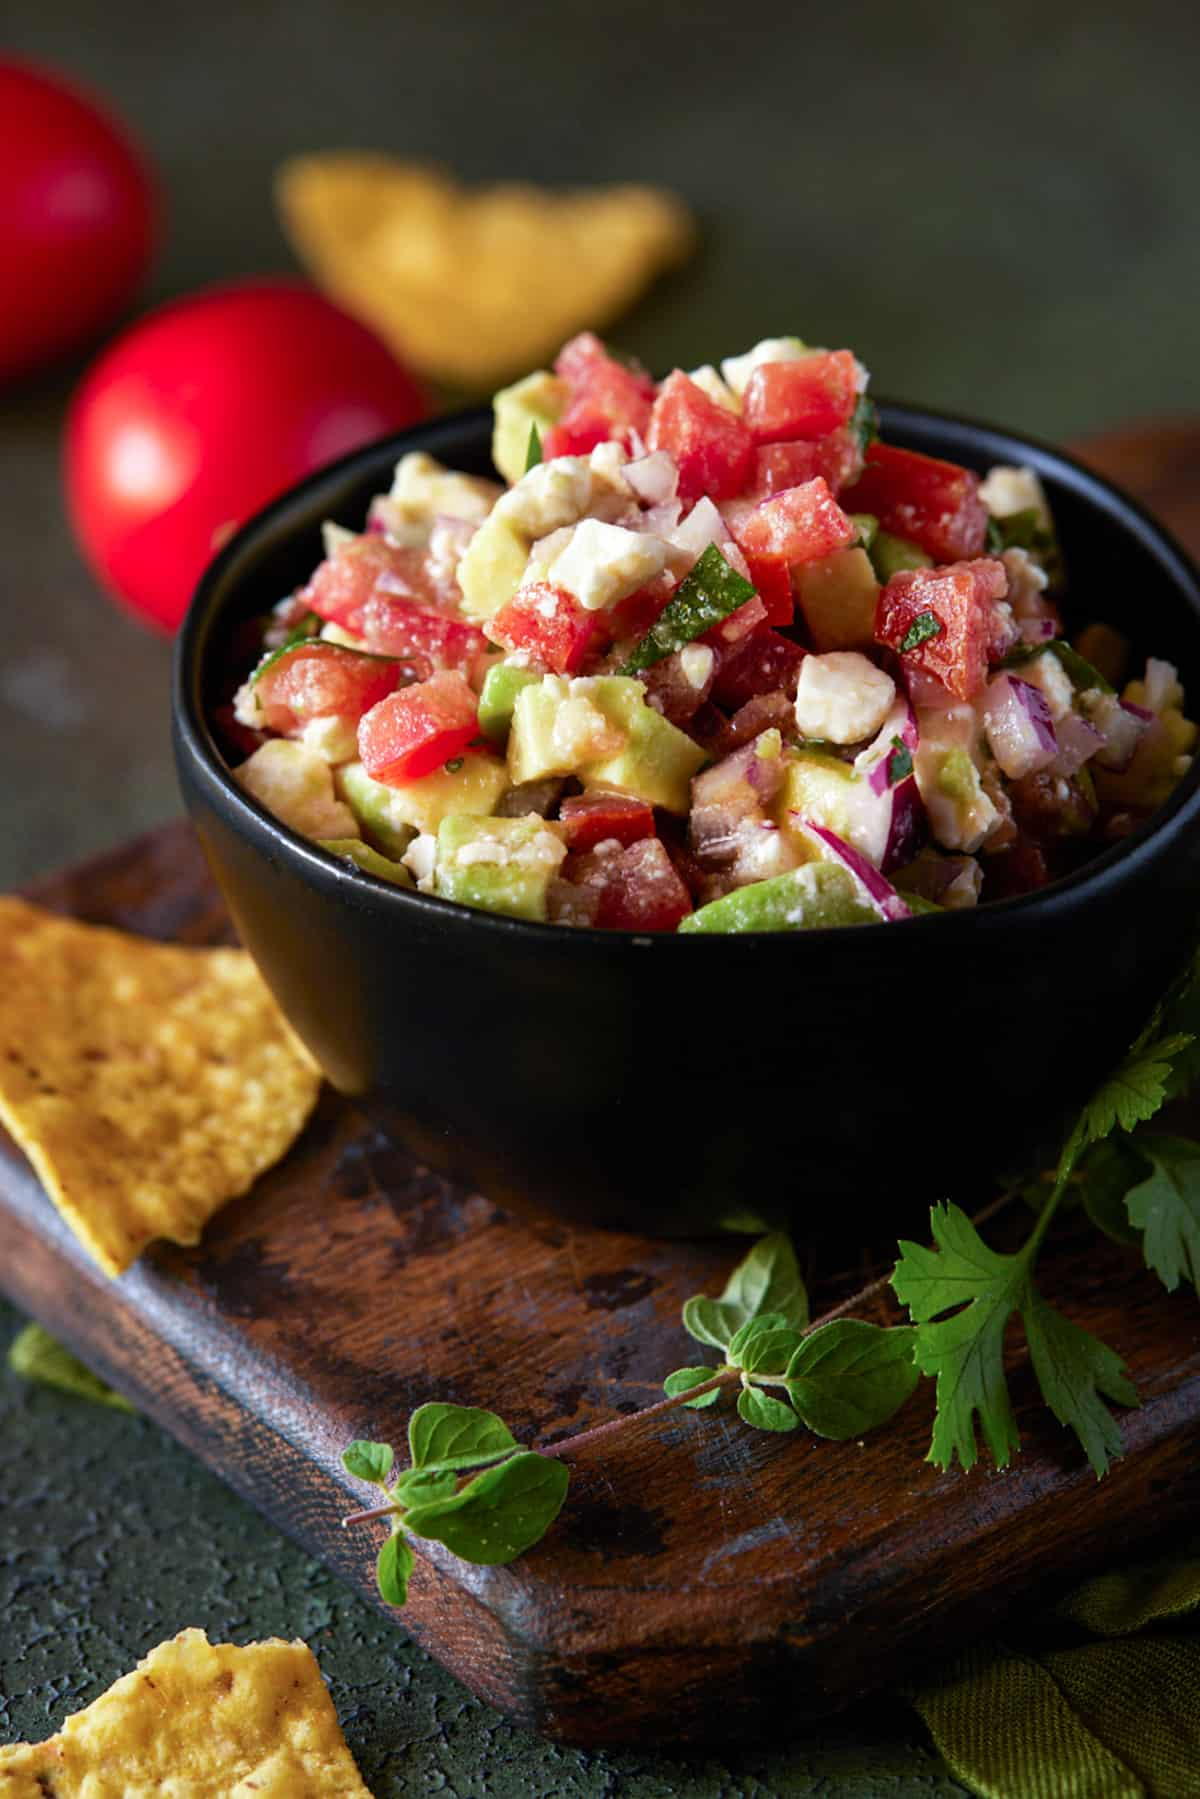 Bowl of avocado salsa wiht feta cheese on table with chips and fresh herbs.